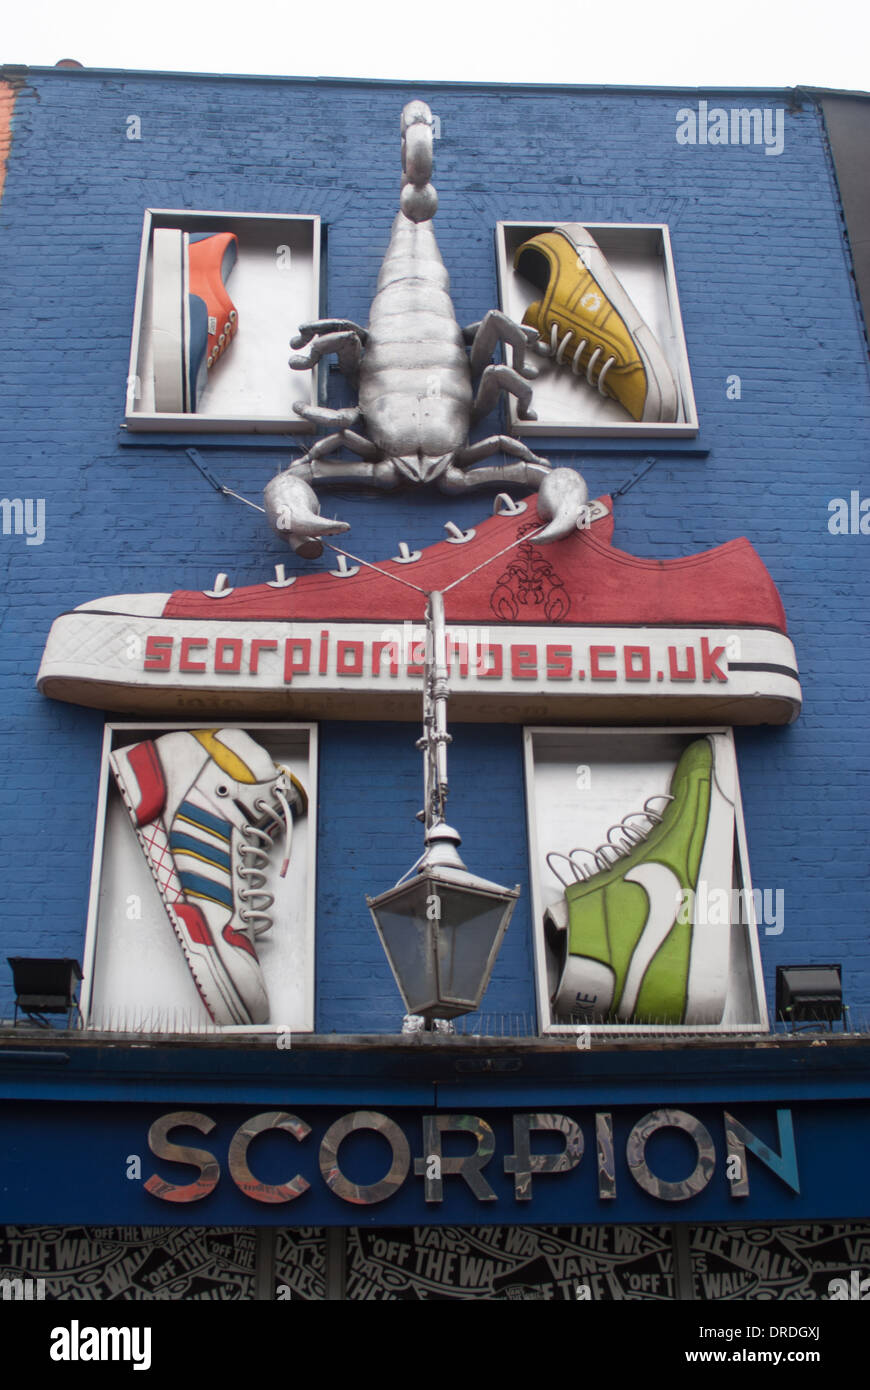 Camden shop front with shoe shop - Stock Image